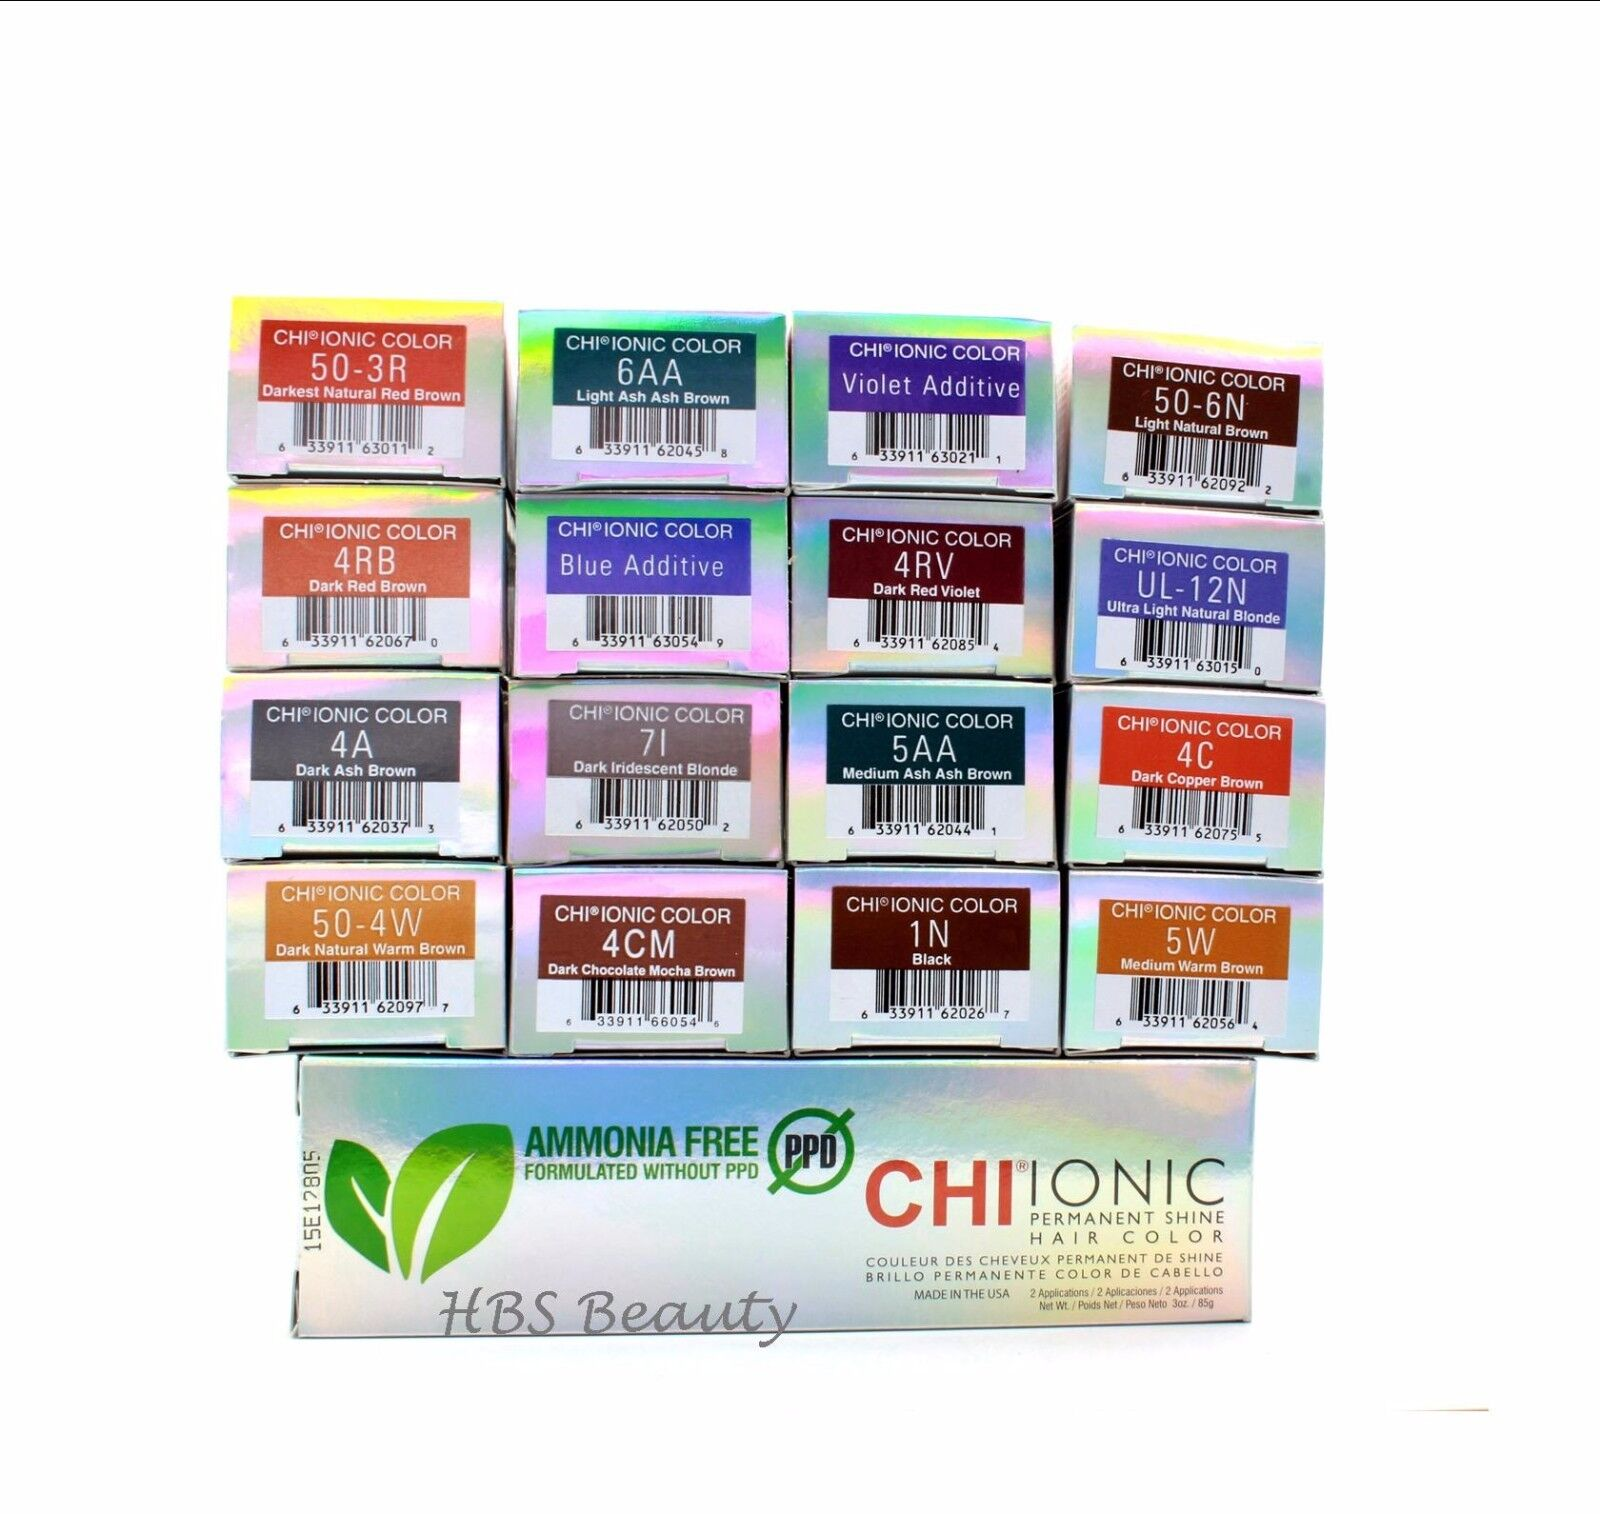 Chi Ionic Permanent Hair Color 50 6n Light Natural Brown 3oz Ebay